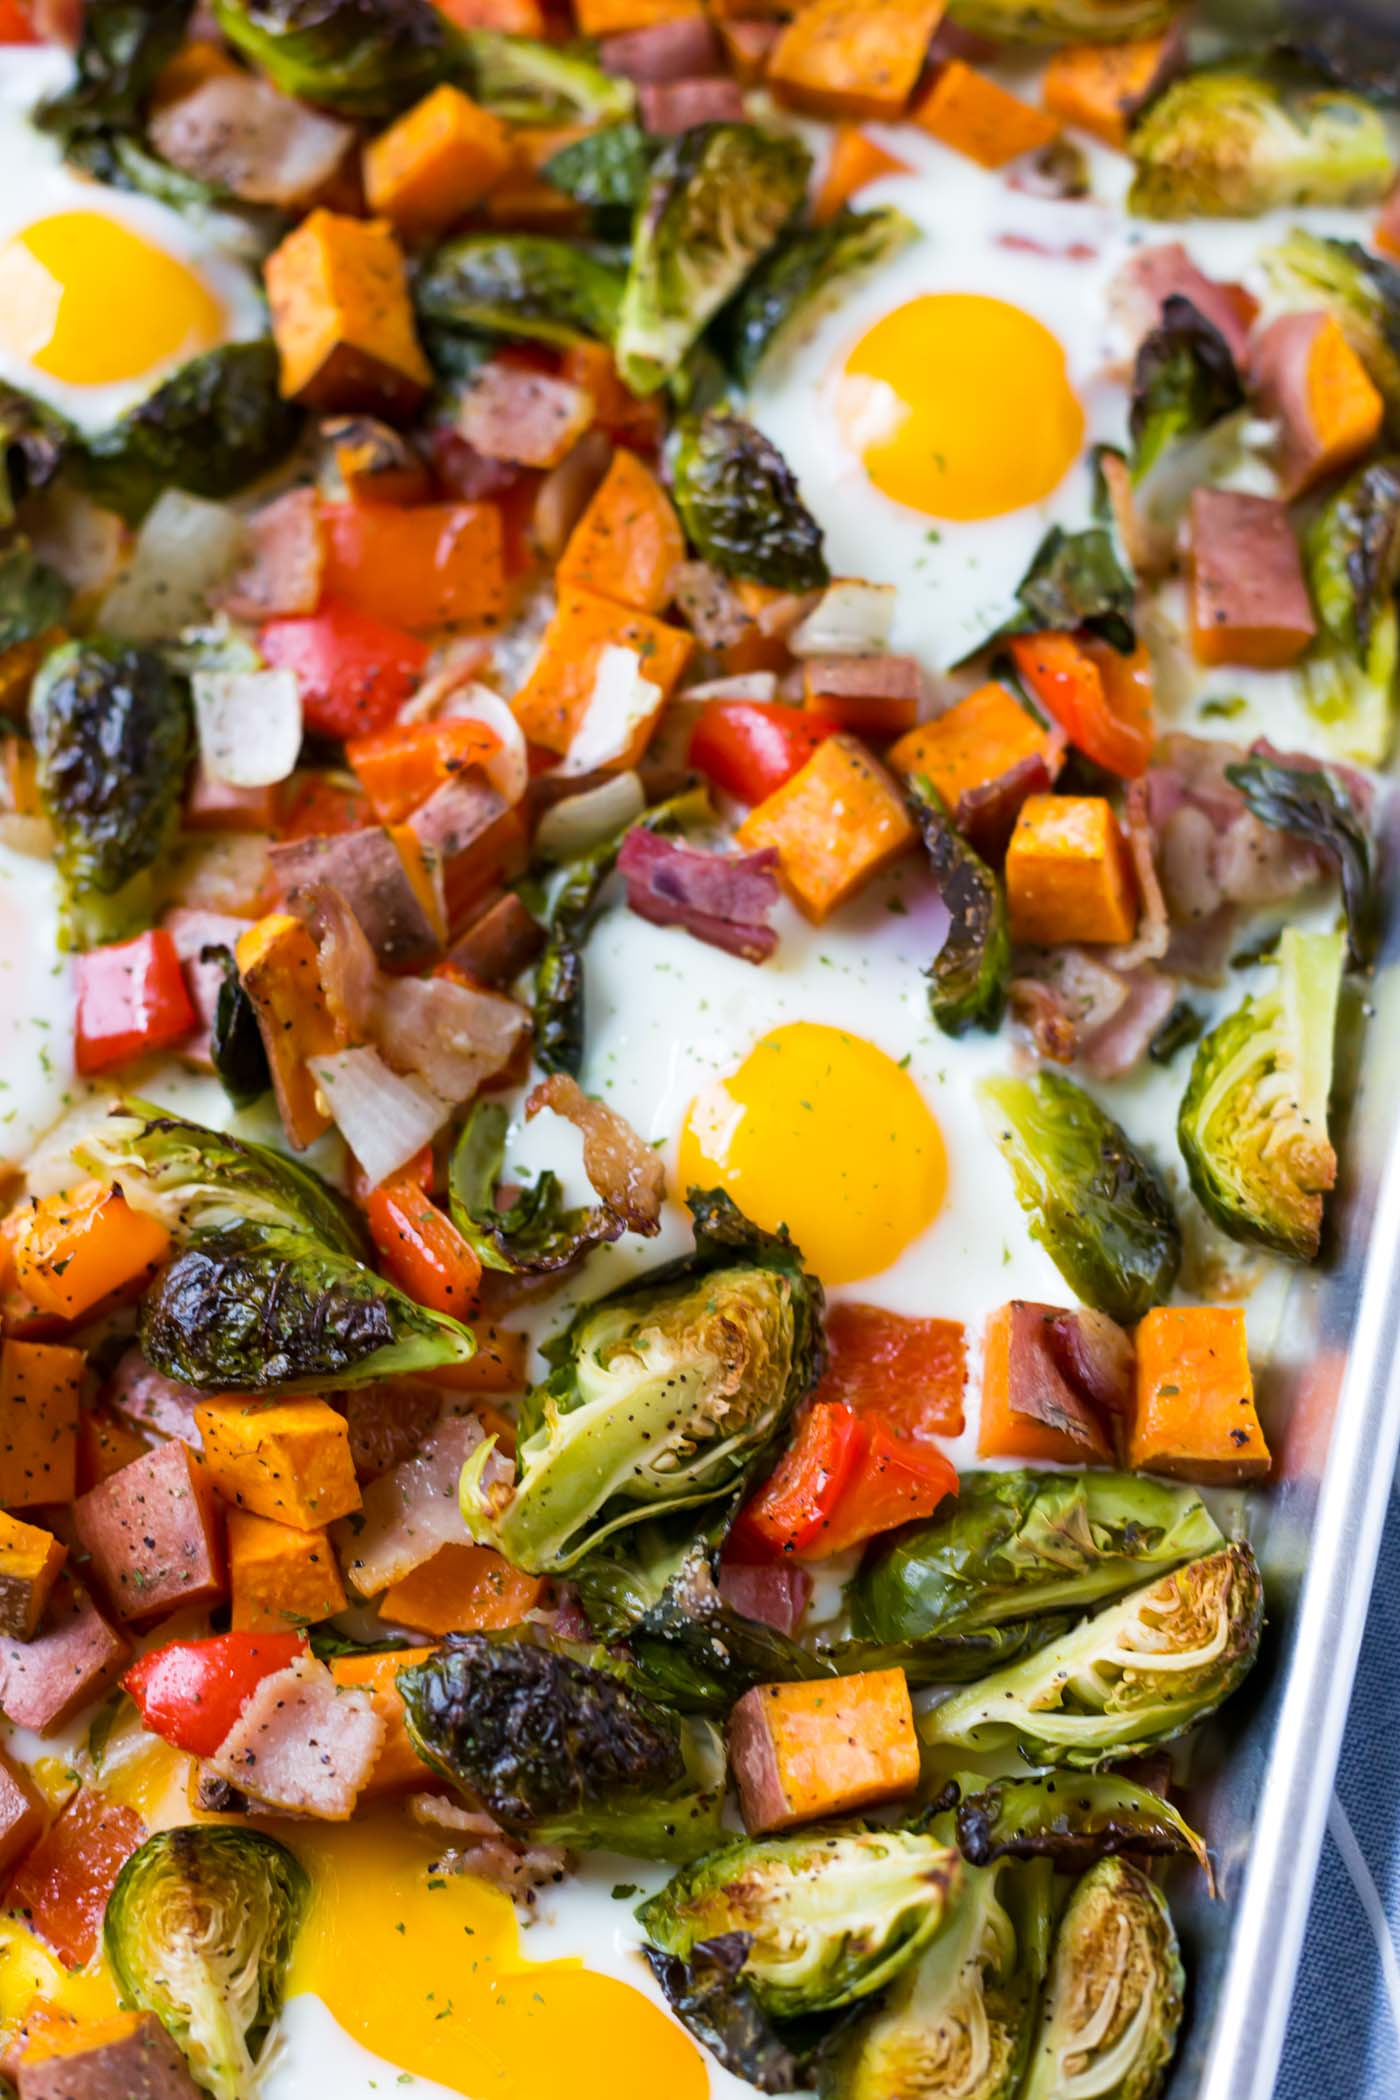 breakfast hash on sheet pan with sweet potatoes, eggs, bacon, brussel sprouts, and red bell pepper.